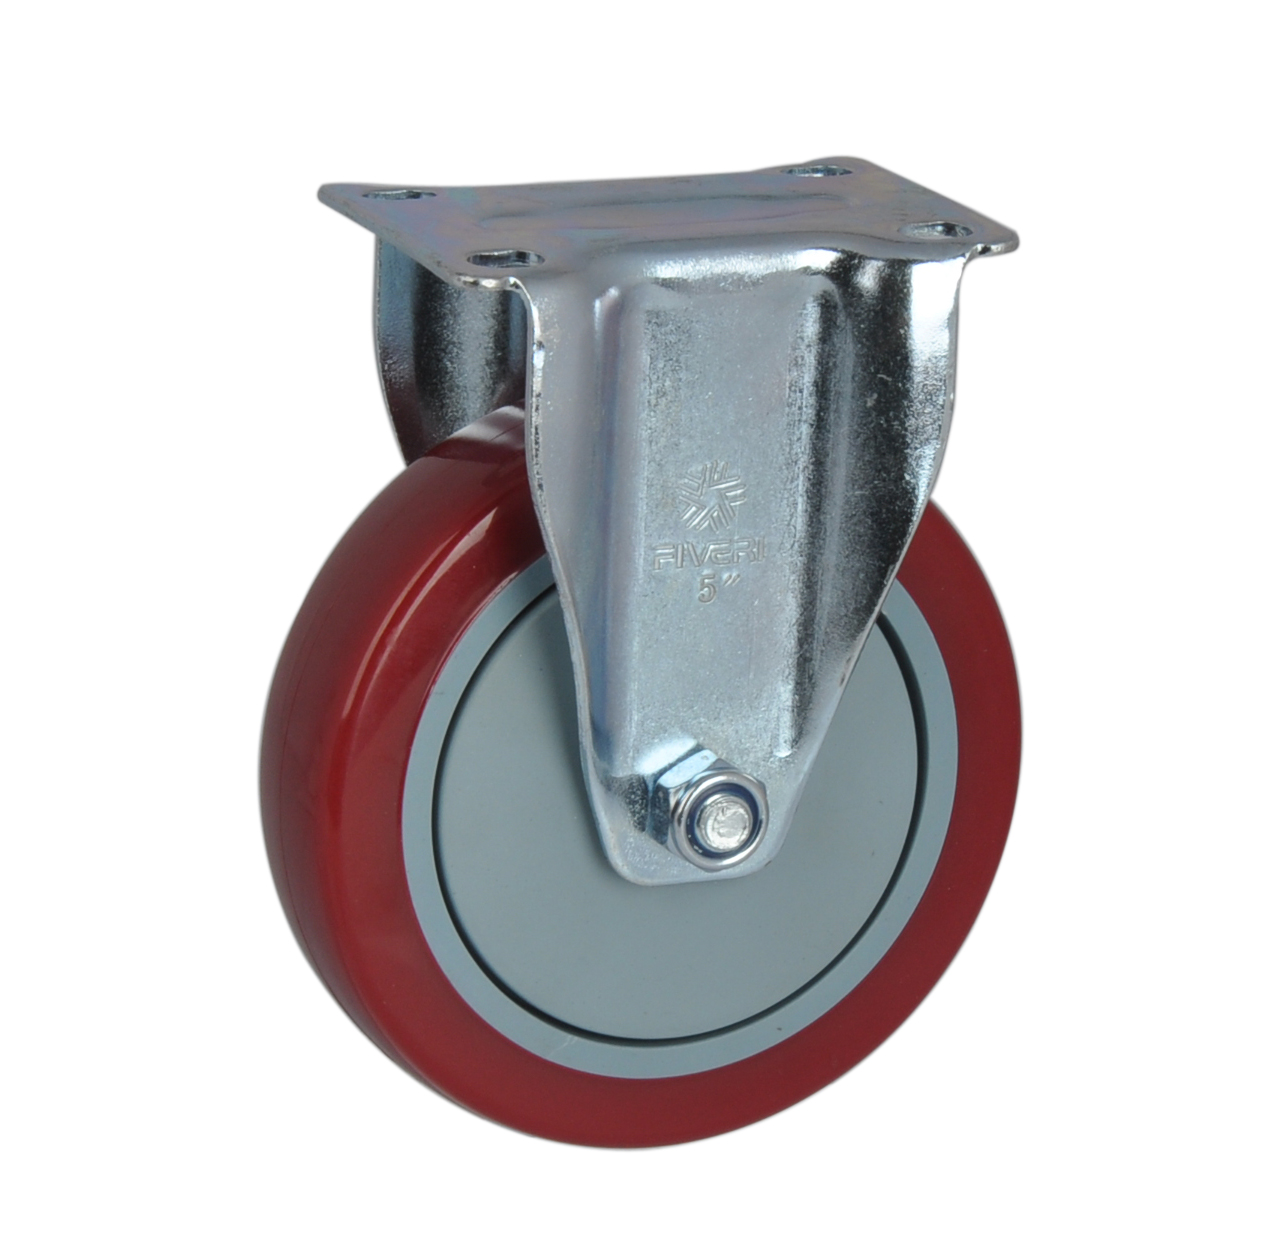 Fa furui medium-sized 4-inch directional 5 polyurethane plastic core of high strength (pp + tpu) casters 5005A-956